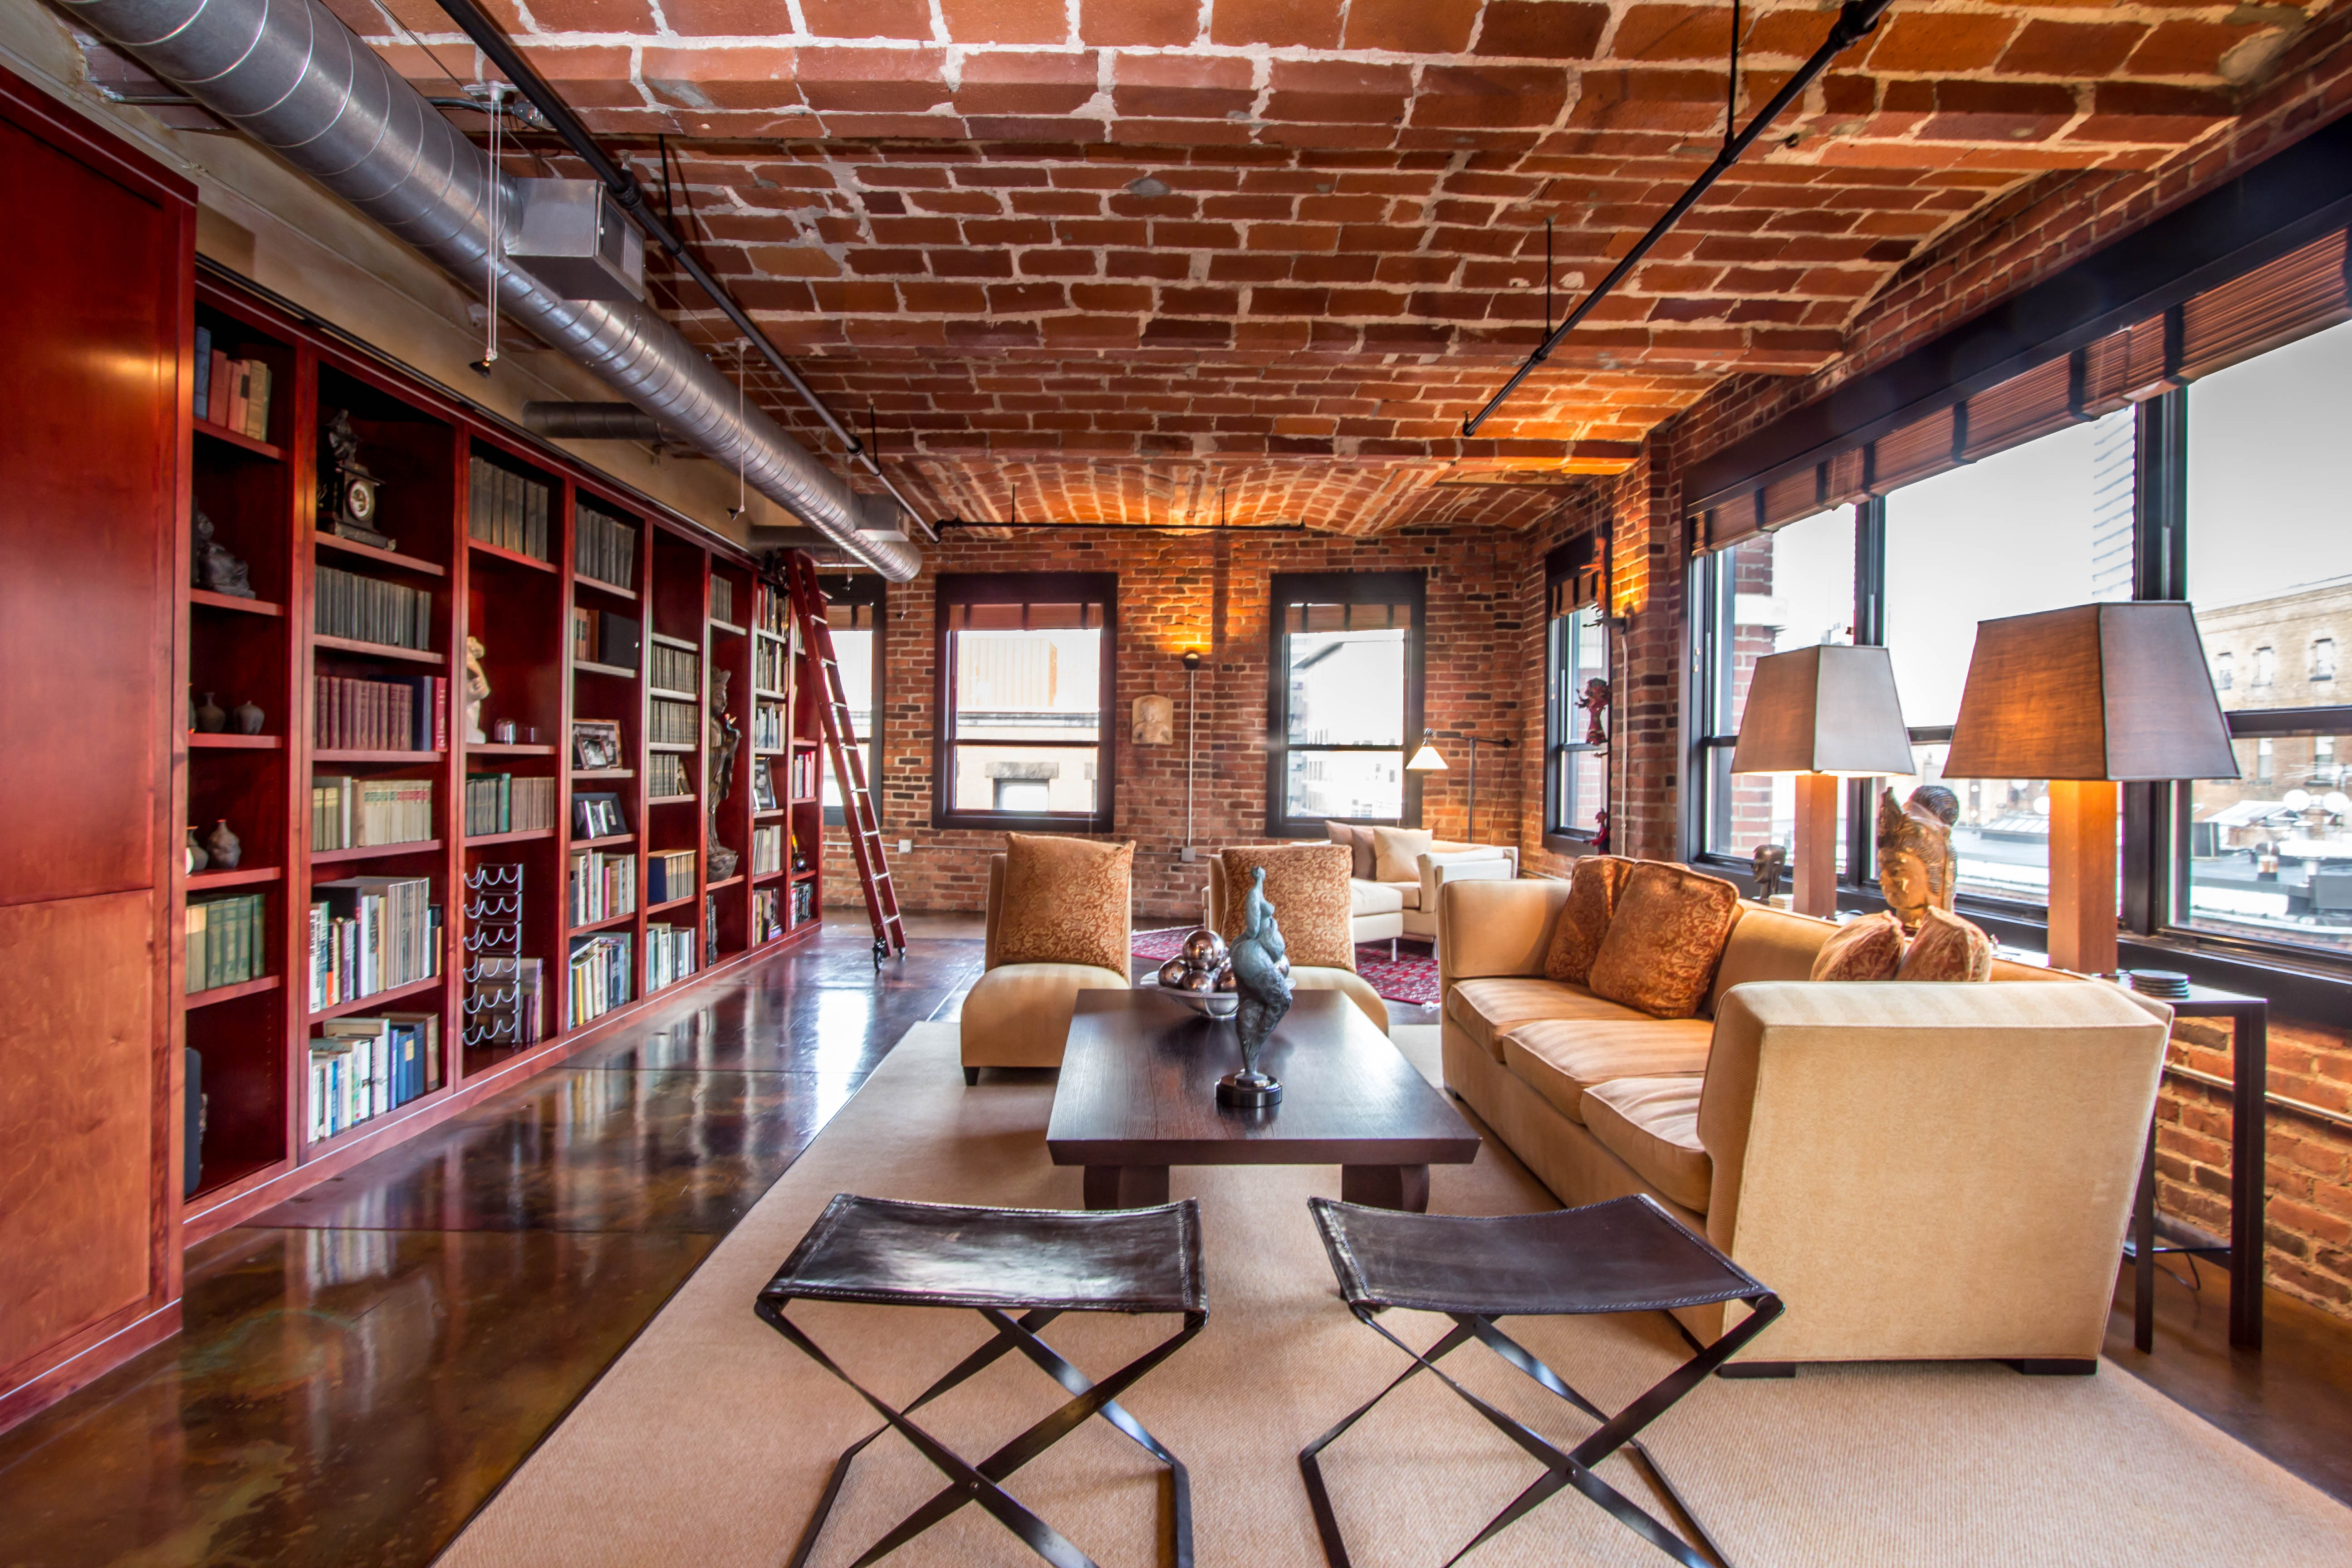 2 Bedroom Apartments San Francisco Awesome Loft For Rent In The Leather District 121 Beach